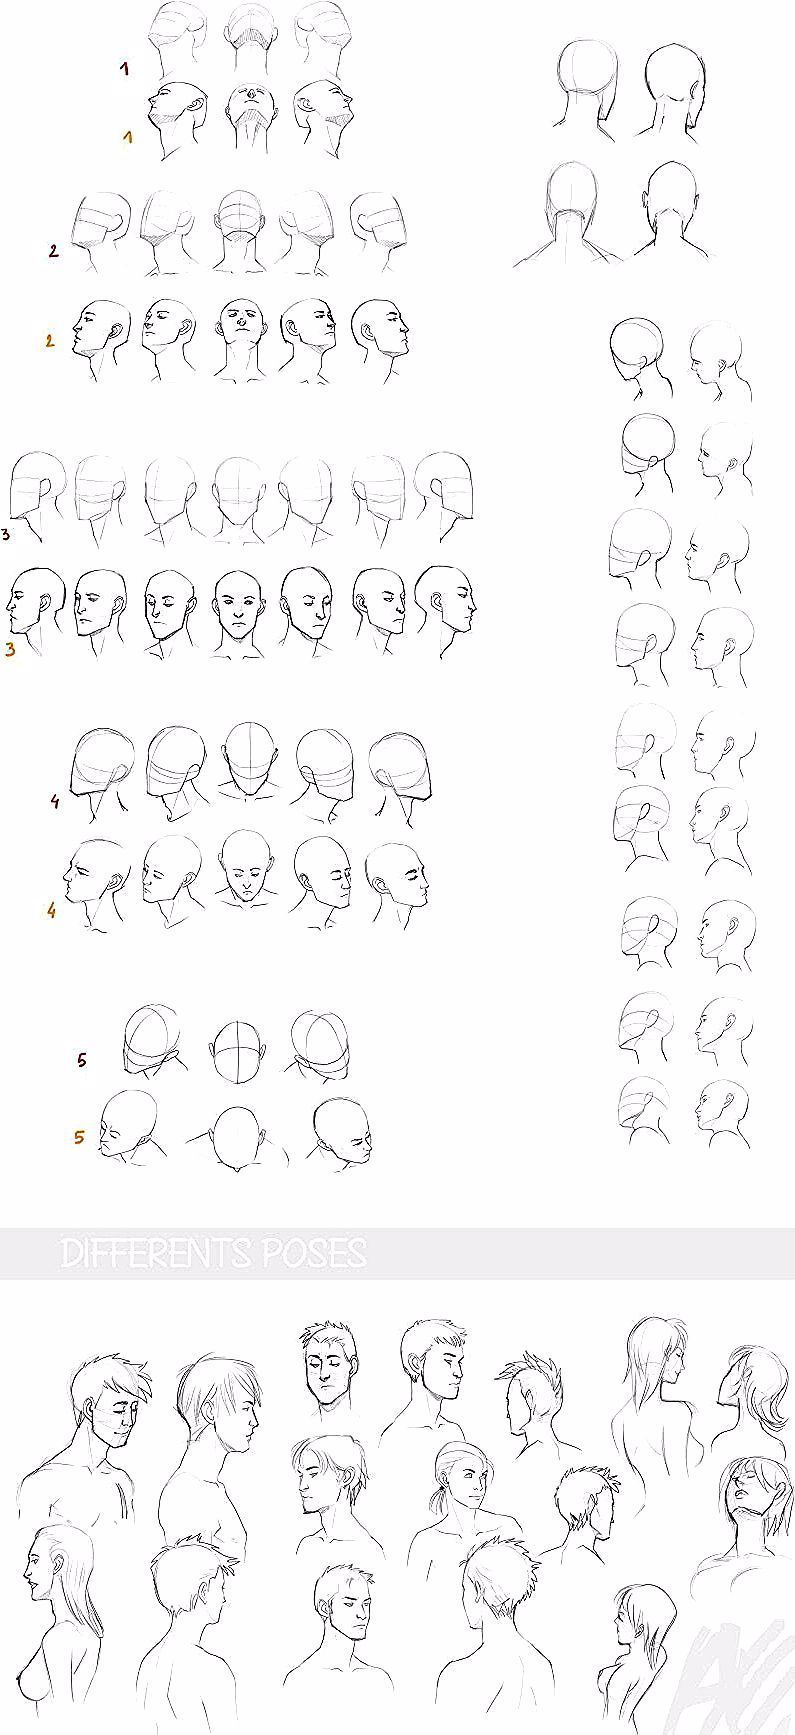 3D Drawing Tips reference head face pose perspective side view male female#drawing #face #female #male #perspective #pose#drawing #face #female #femaledrawing #male #perspective #pose #reference #side #tips #view